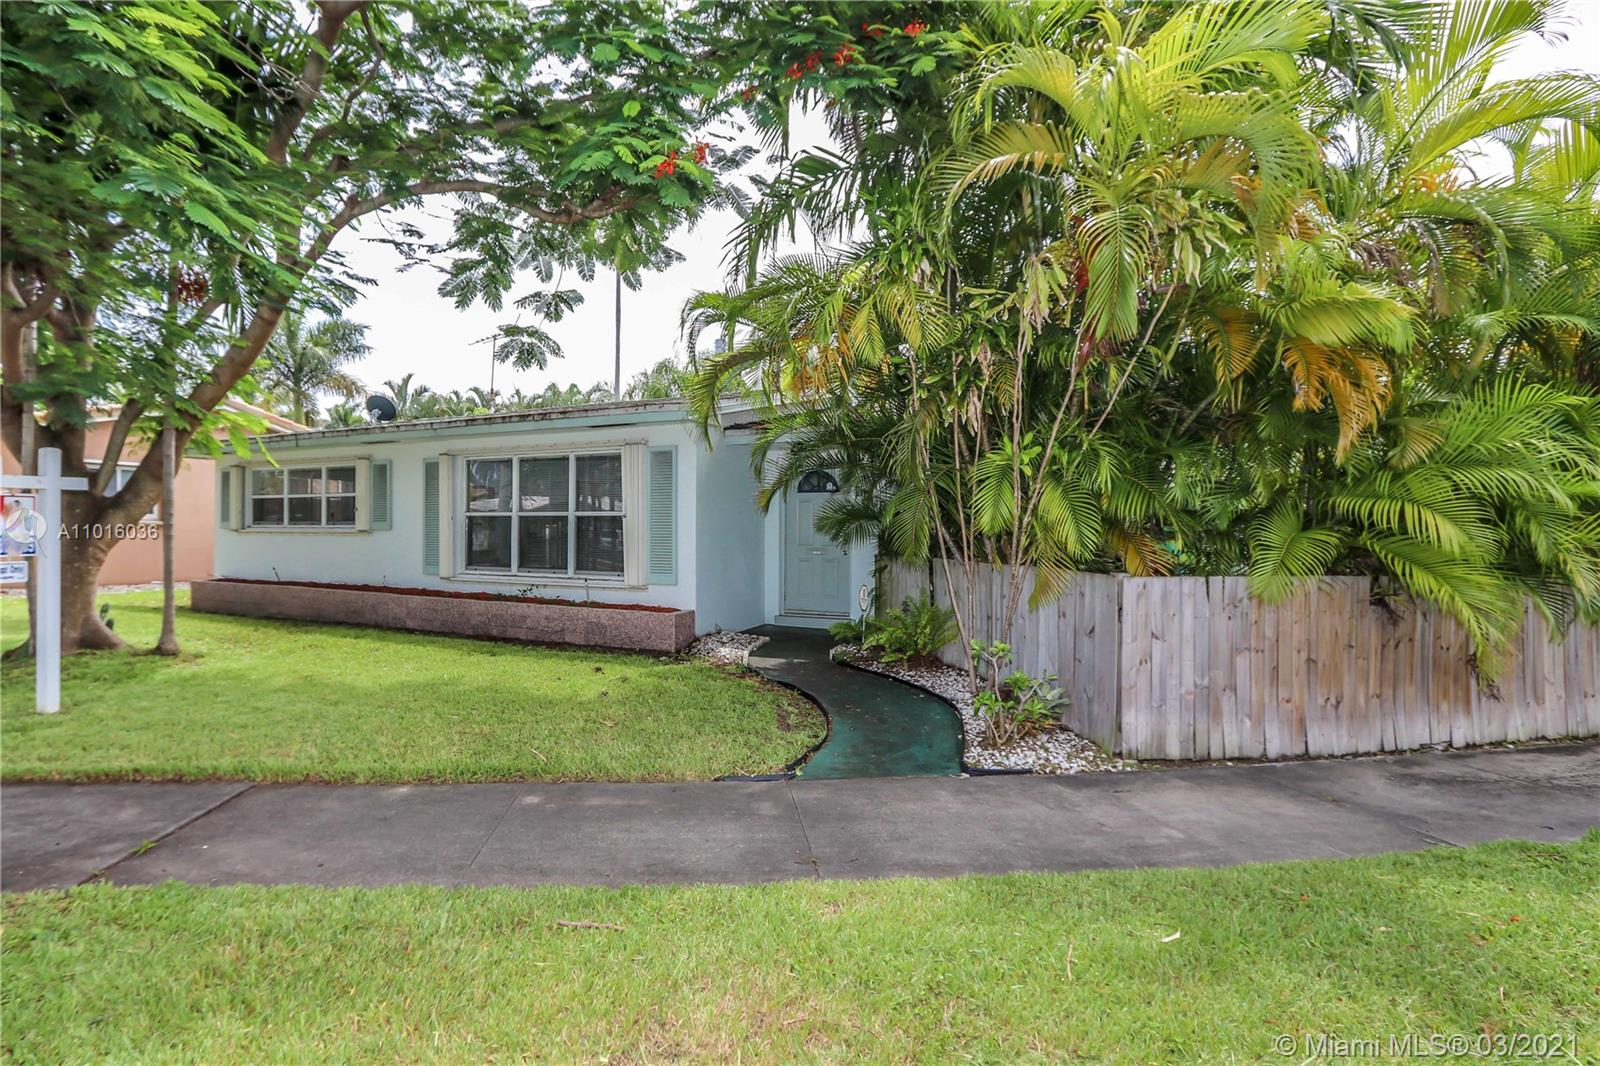 Country Club Homes, 1124 N 13th Ave, Hollywood, Florida 33019